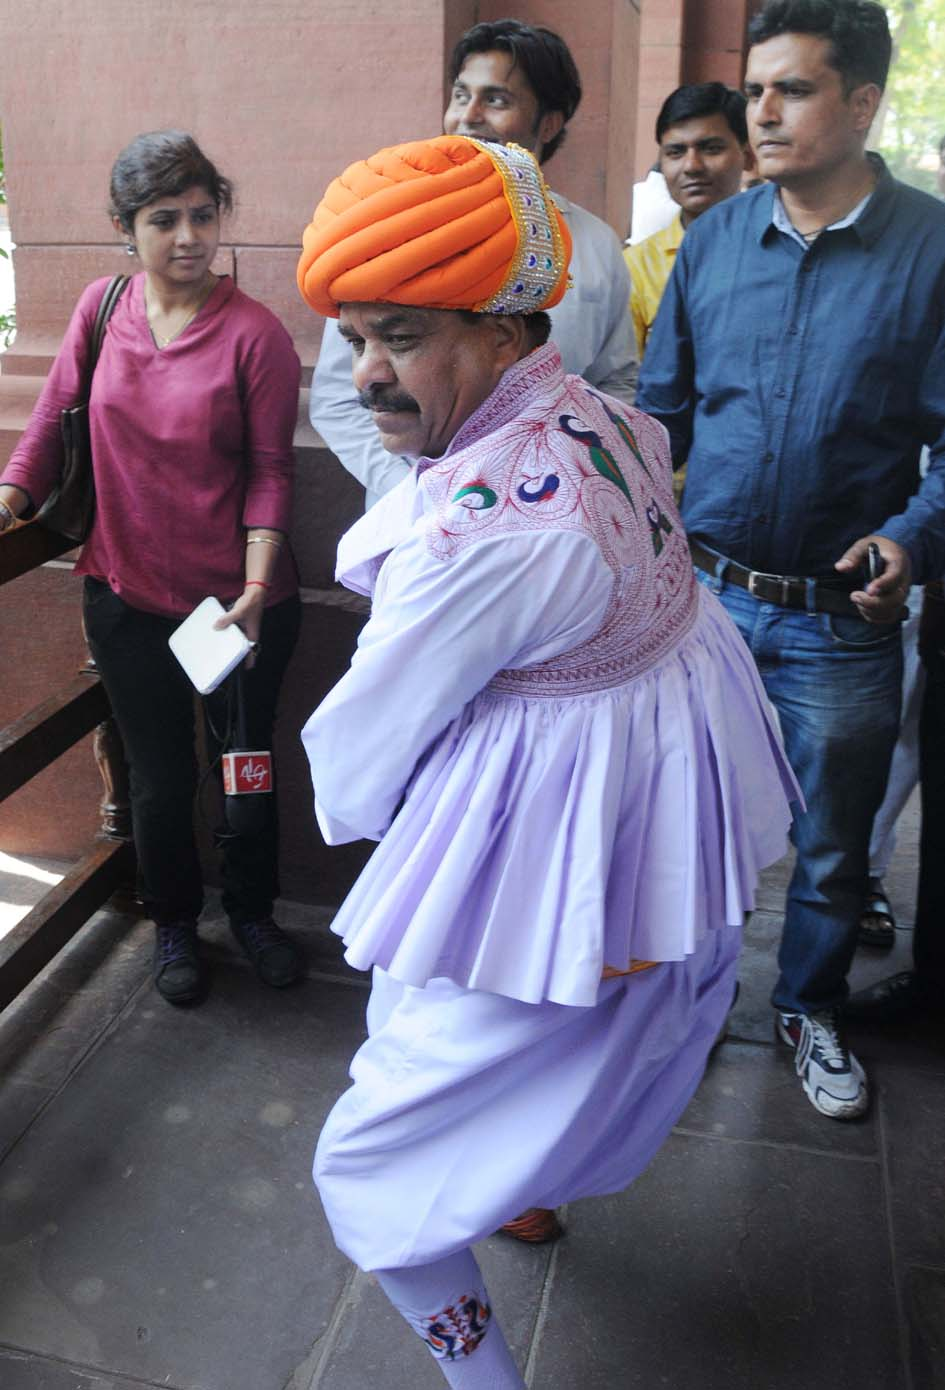 BJP MP Devji Bhai entertaining media personnel while entering Parliament House to take oath as Member of Parliament in New Delhi on Thursday. (UNI)